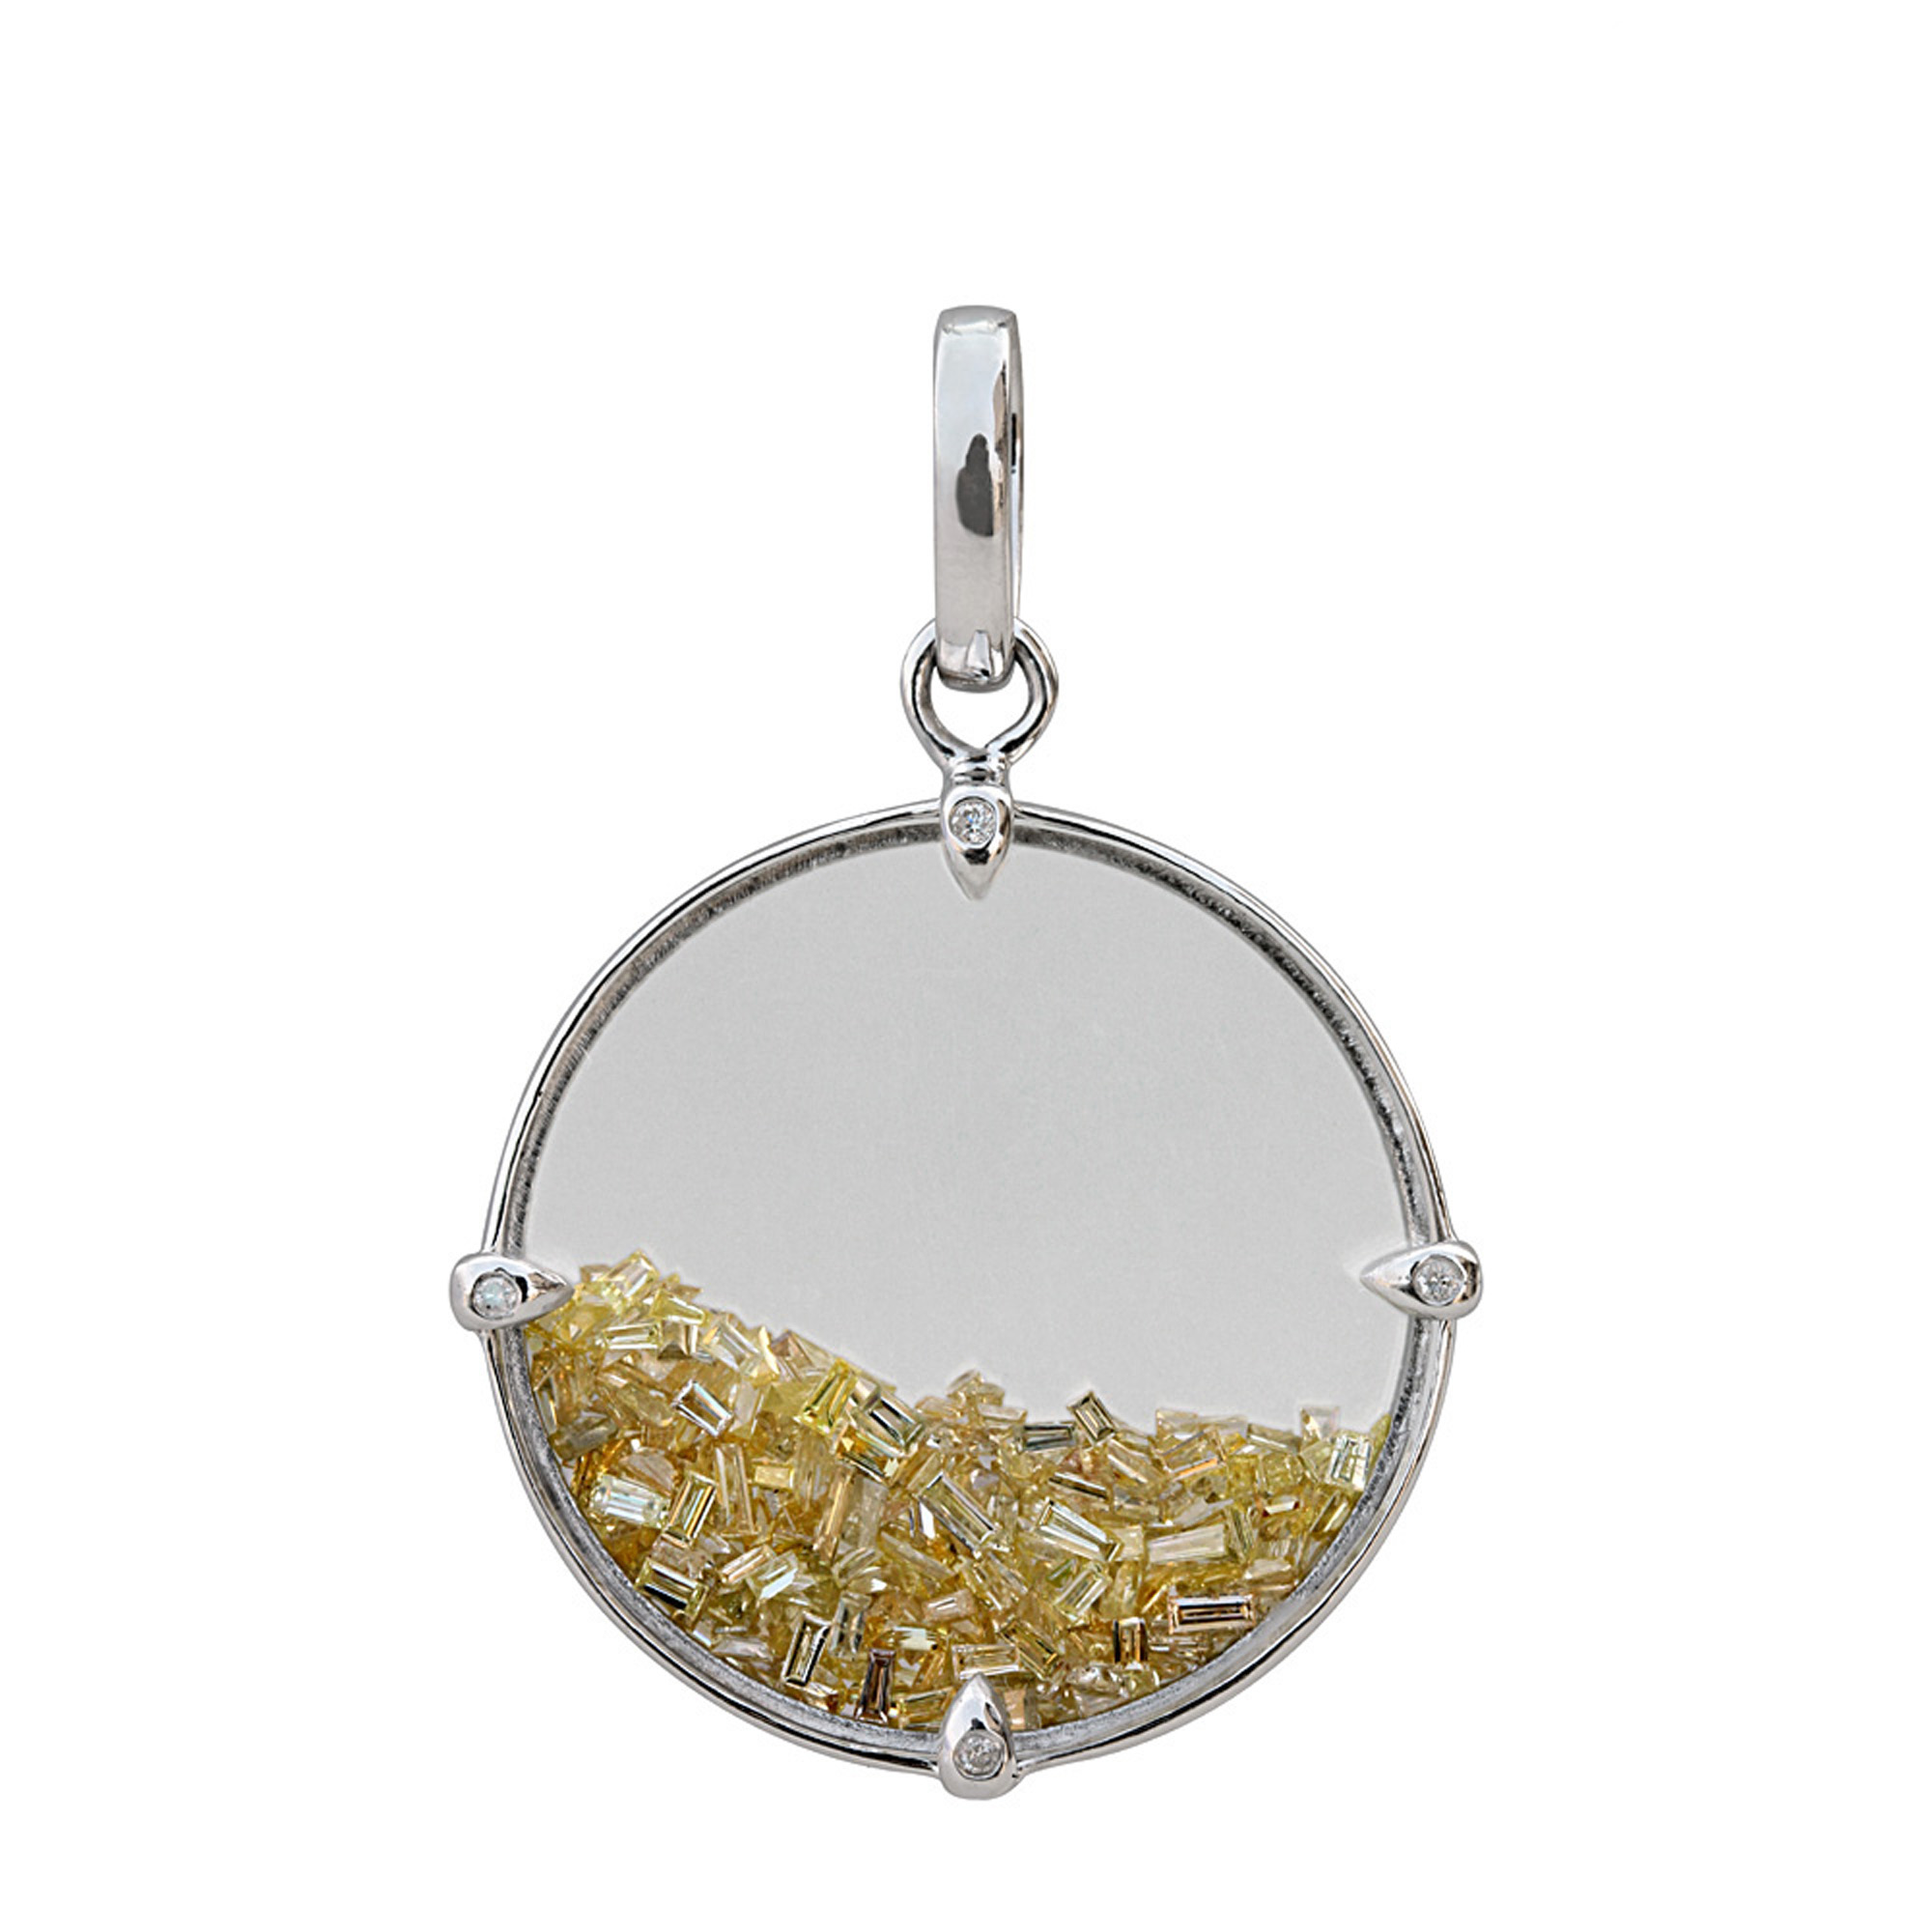 Crystal shaker pendant 3.05ct real loose diamond & 18k solid white gold Jewelry